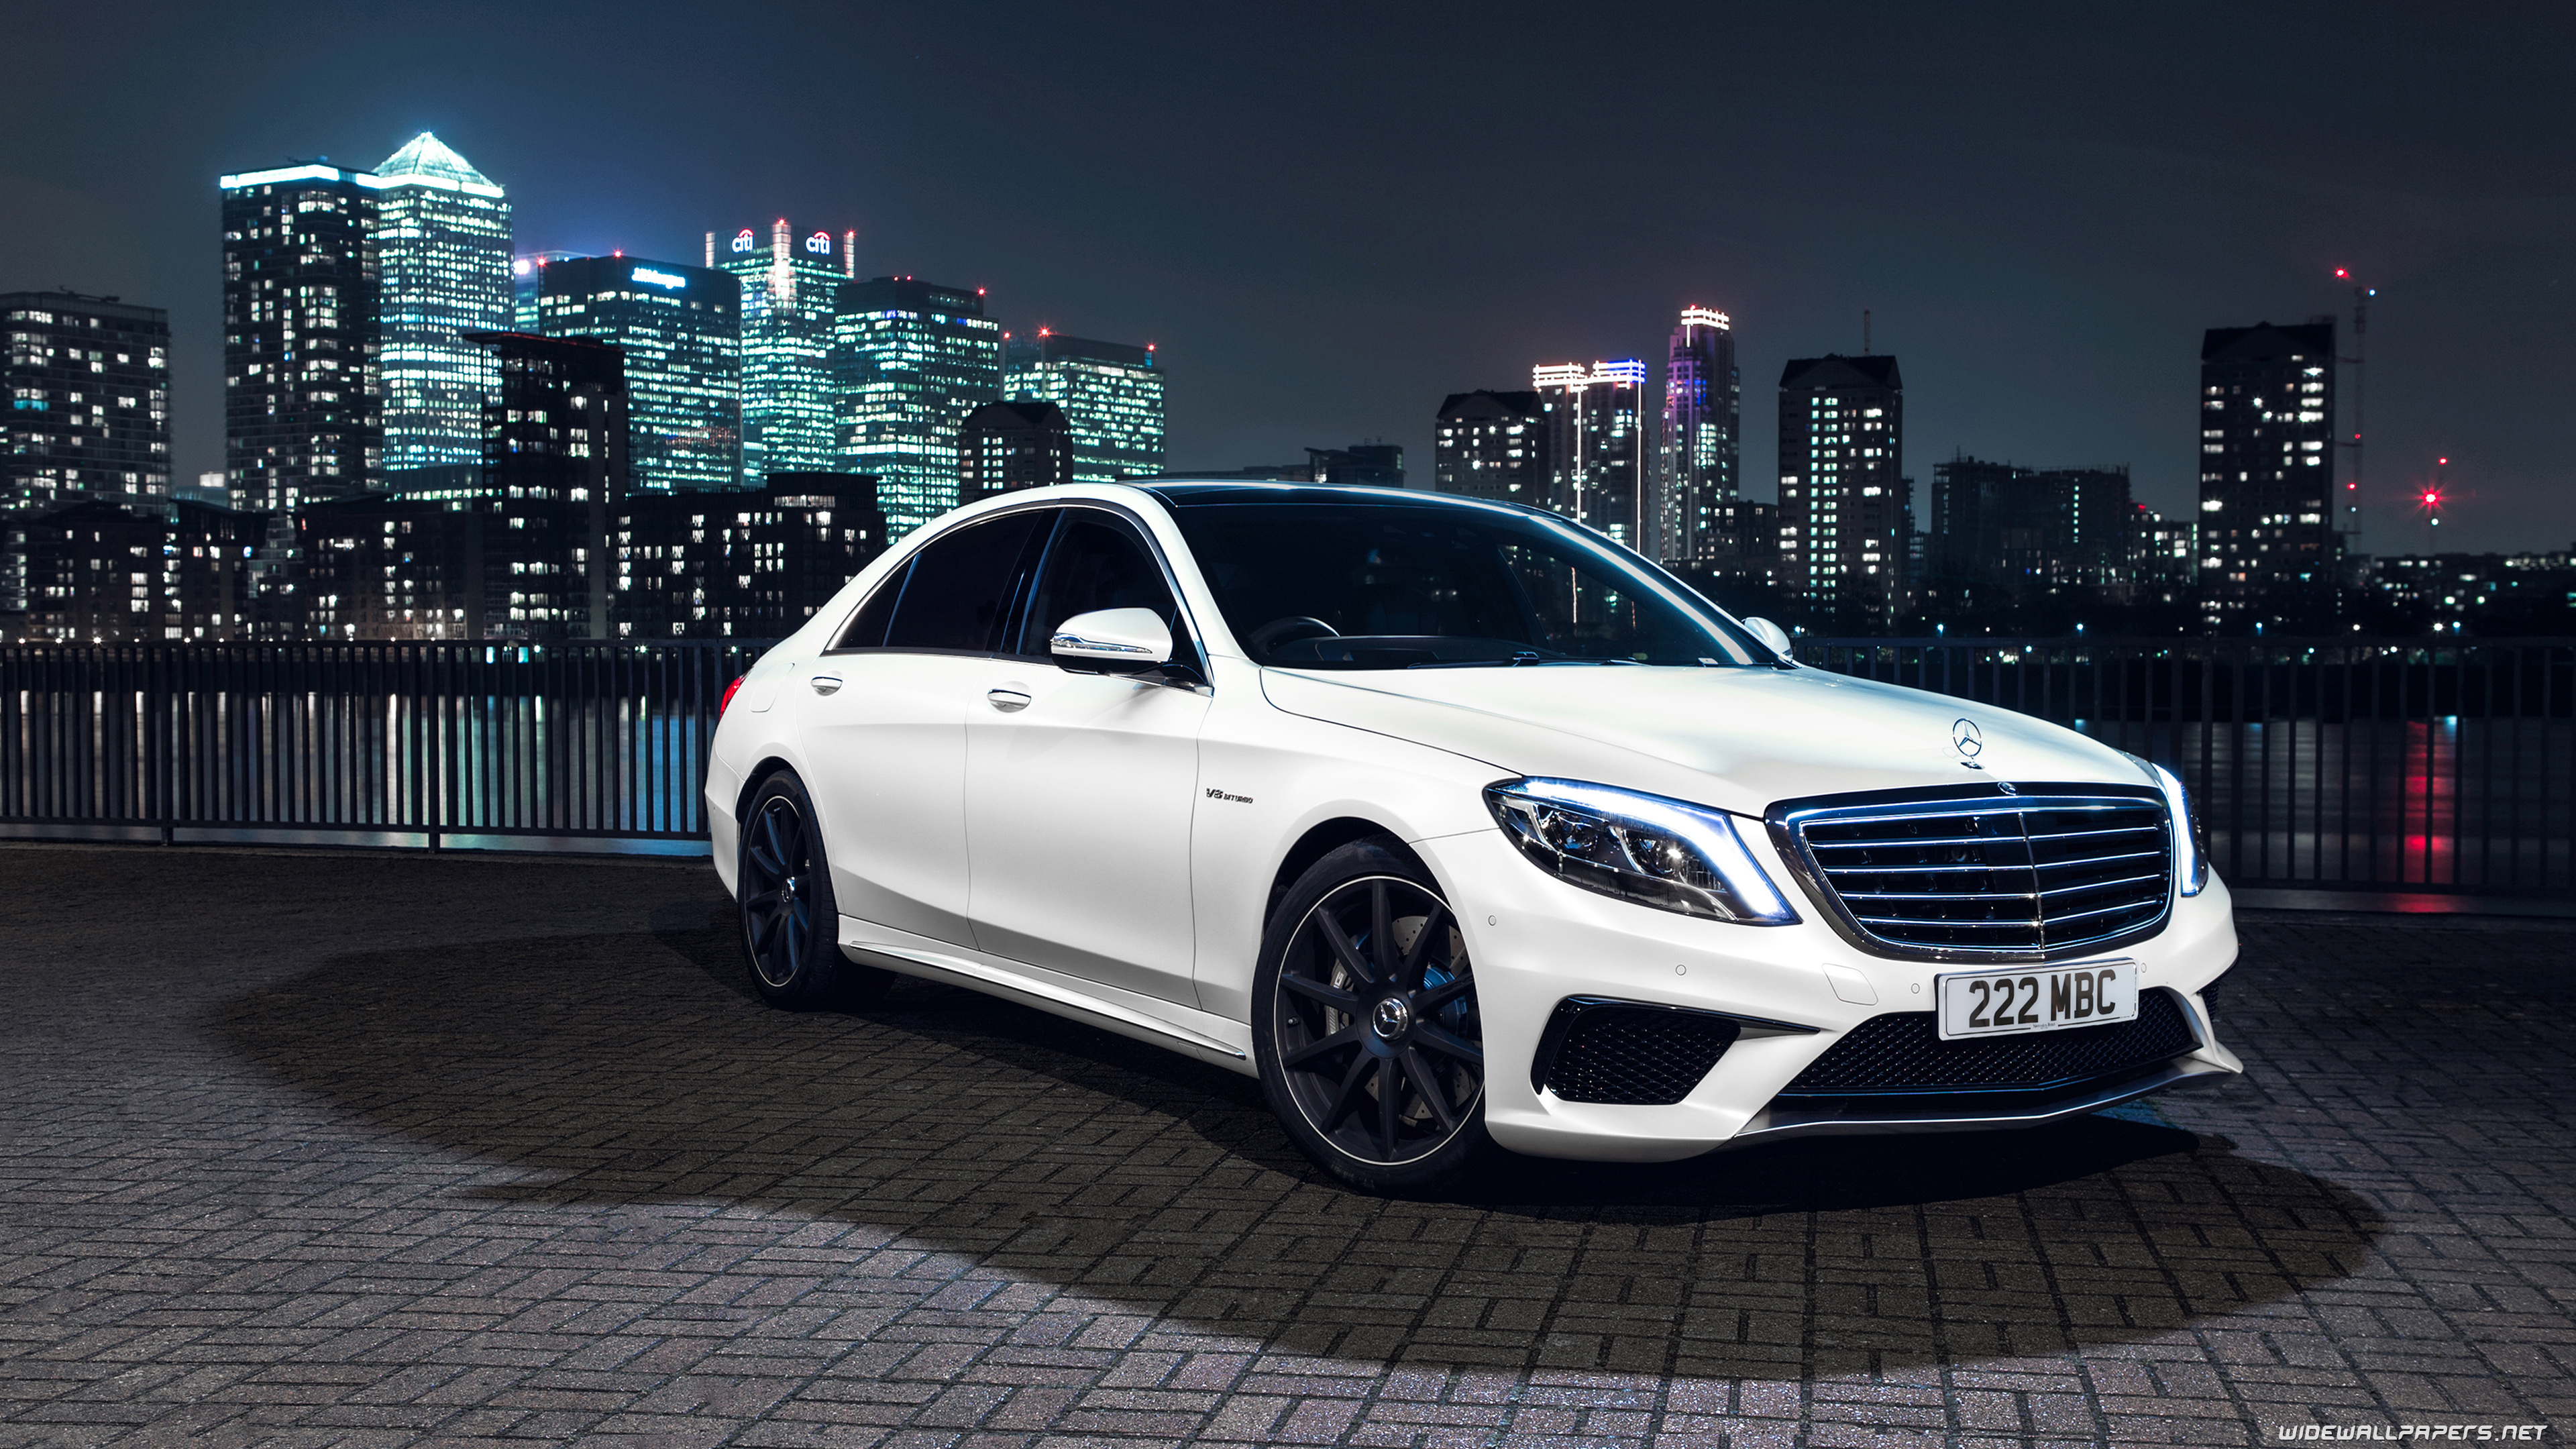 mercedesbenz sclass cars desktop wallpapers 4k ultra hd